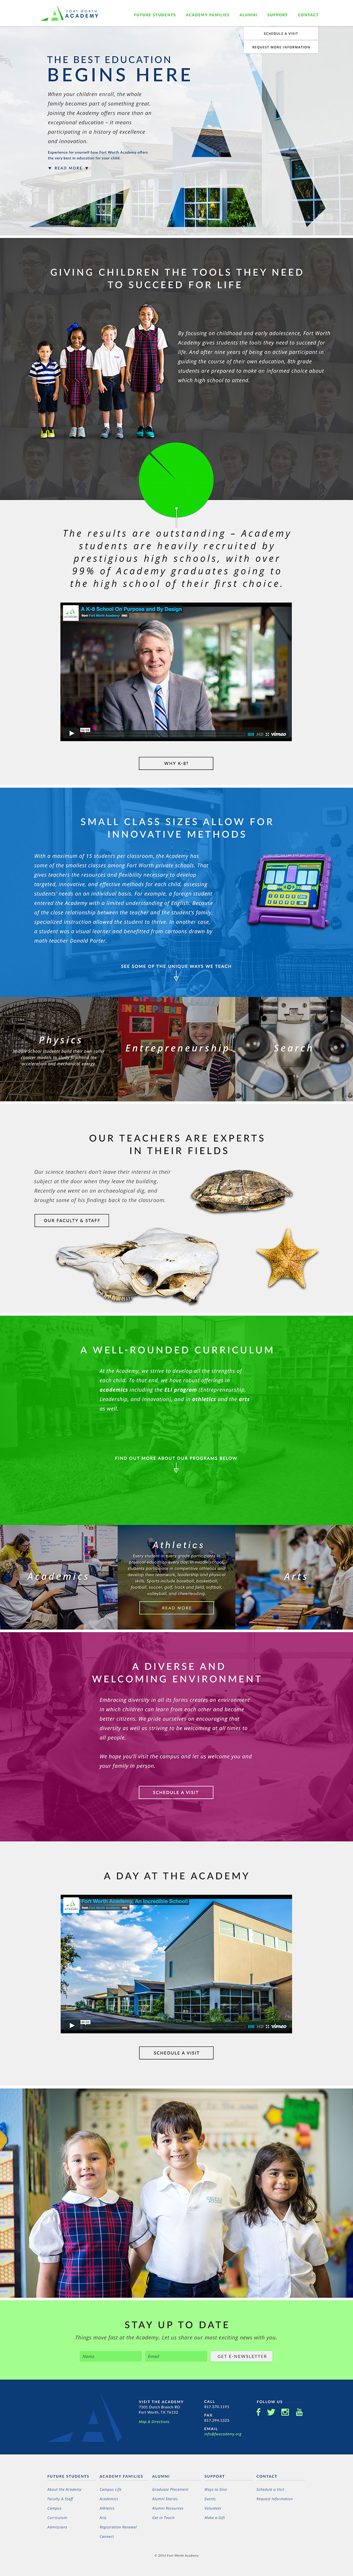 Fort Worth Academy Mobile Responsive Website